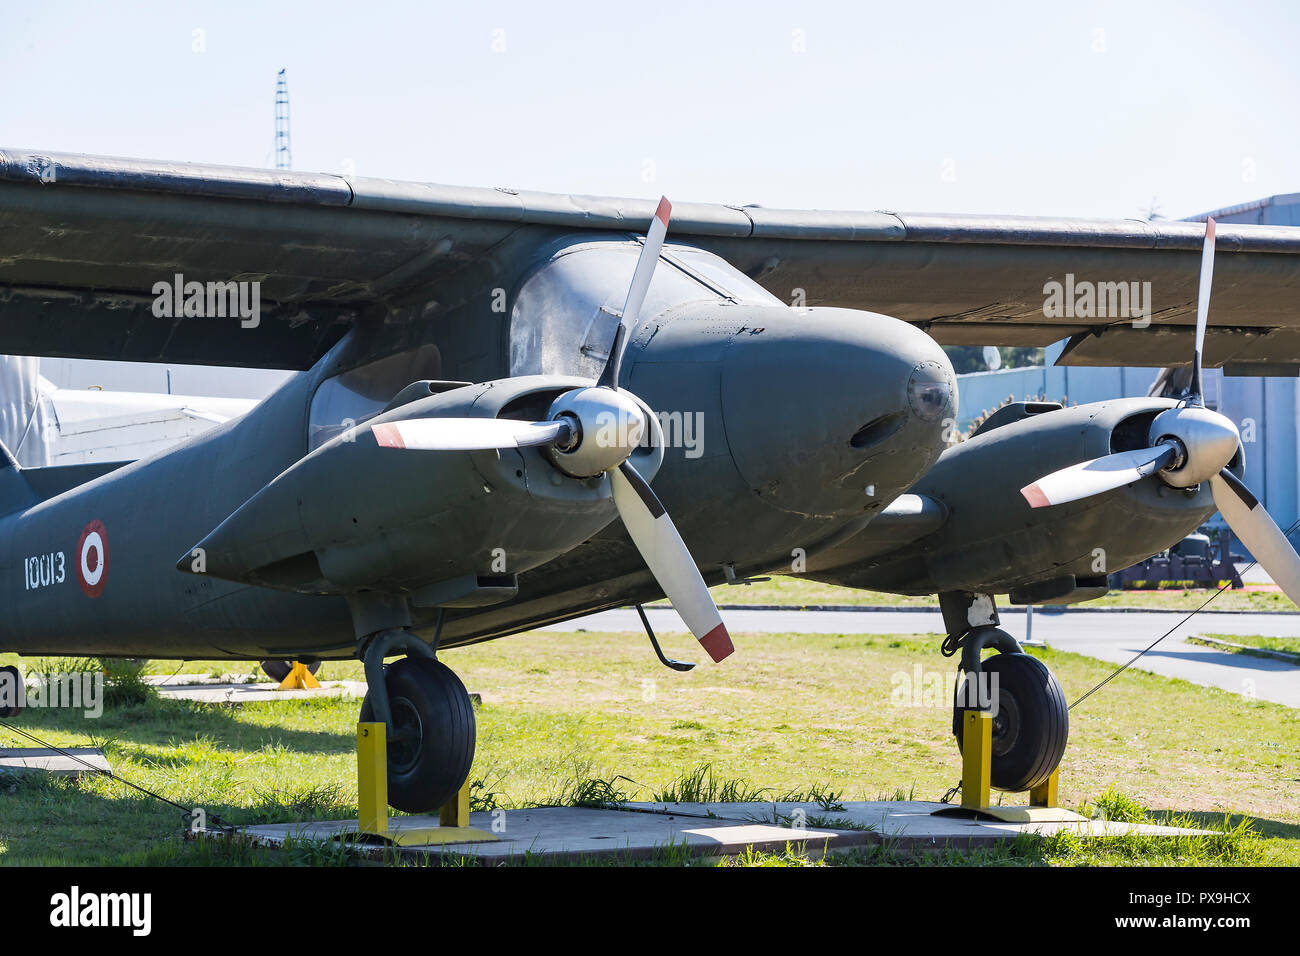 ISTANBUL, TURKEY - 4 APRIL , 2017: Museum of aviation in Istanbul is represented by a large collection of military civil aircraft and also the history - Stock Image